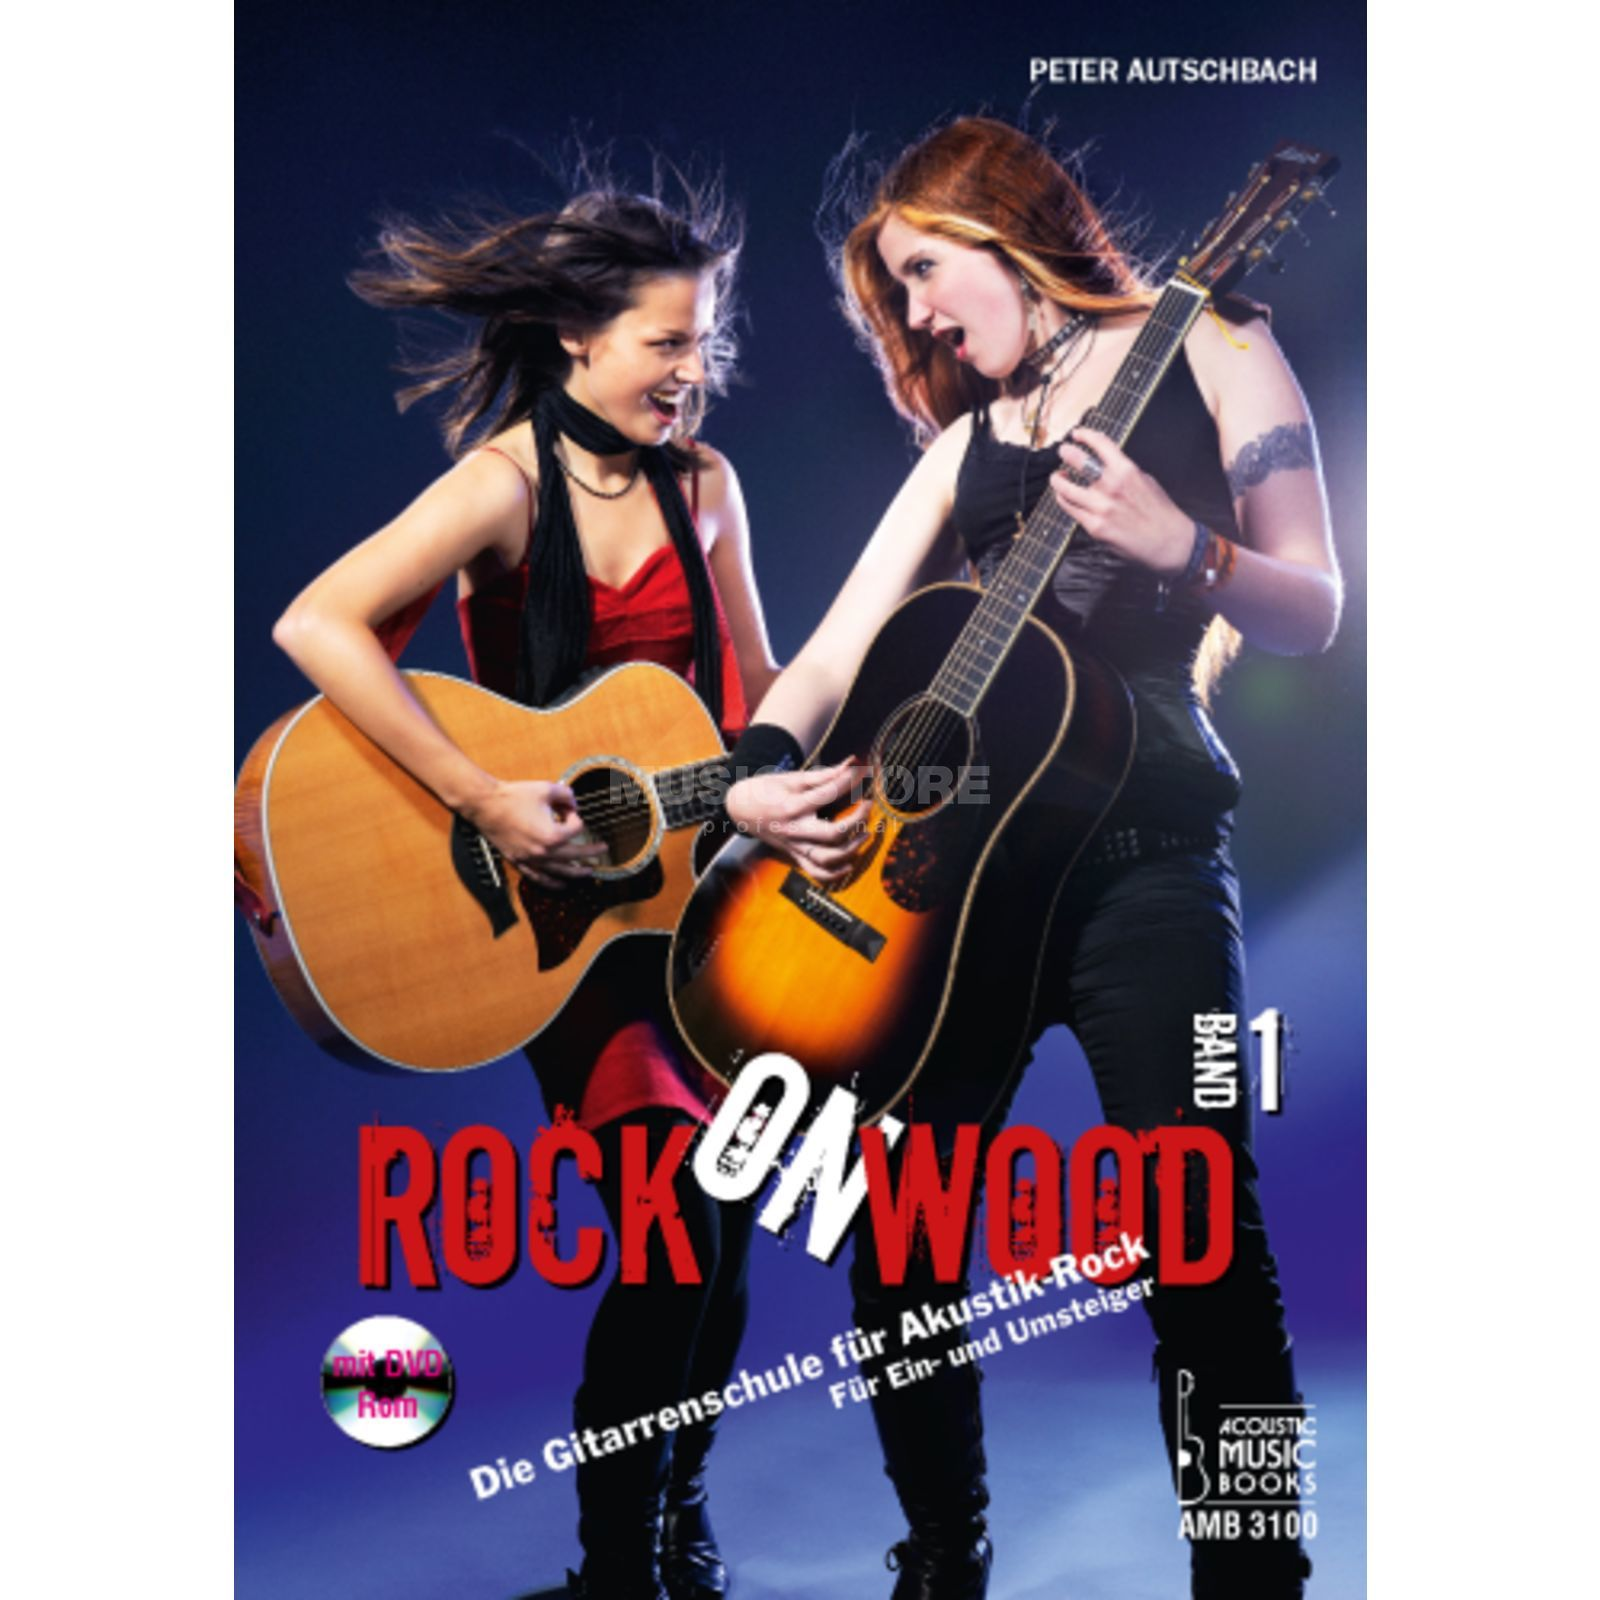 Acoustic Music Books Rock on Wood 1 Produktbillede